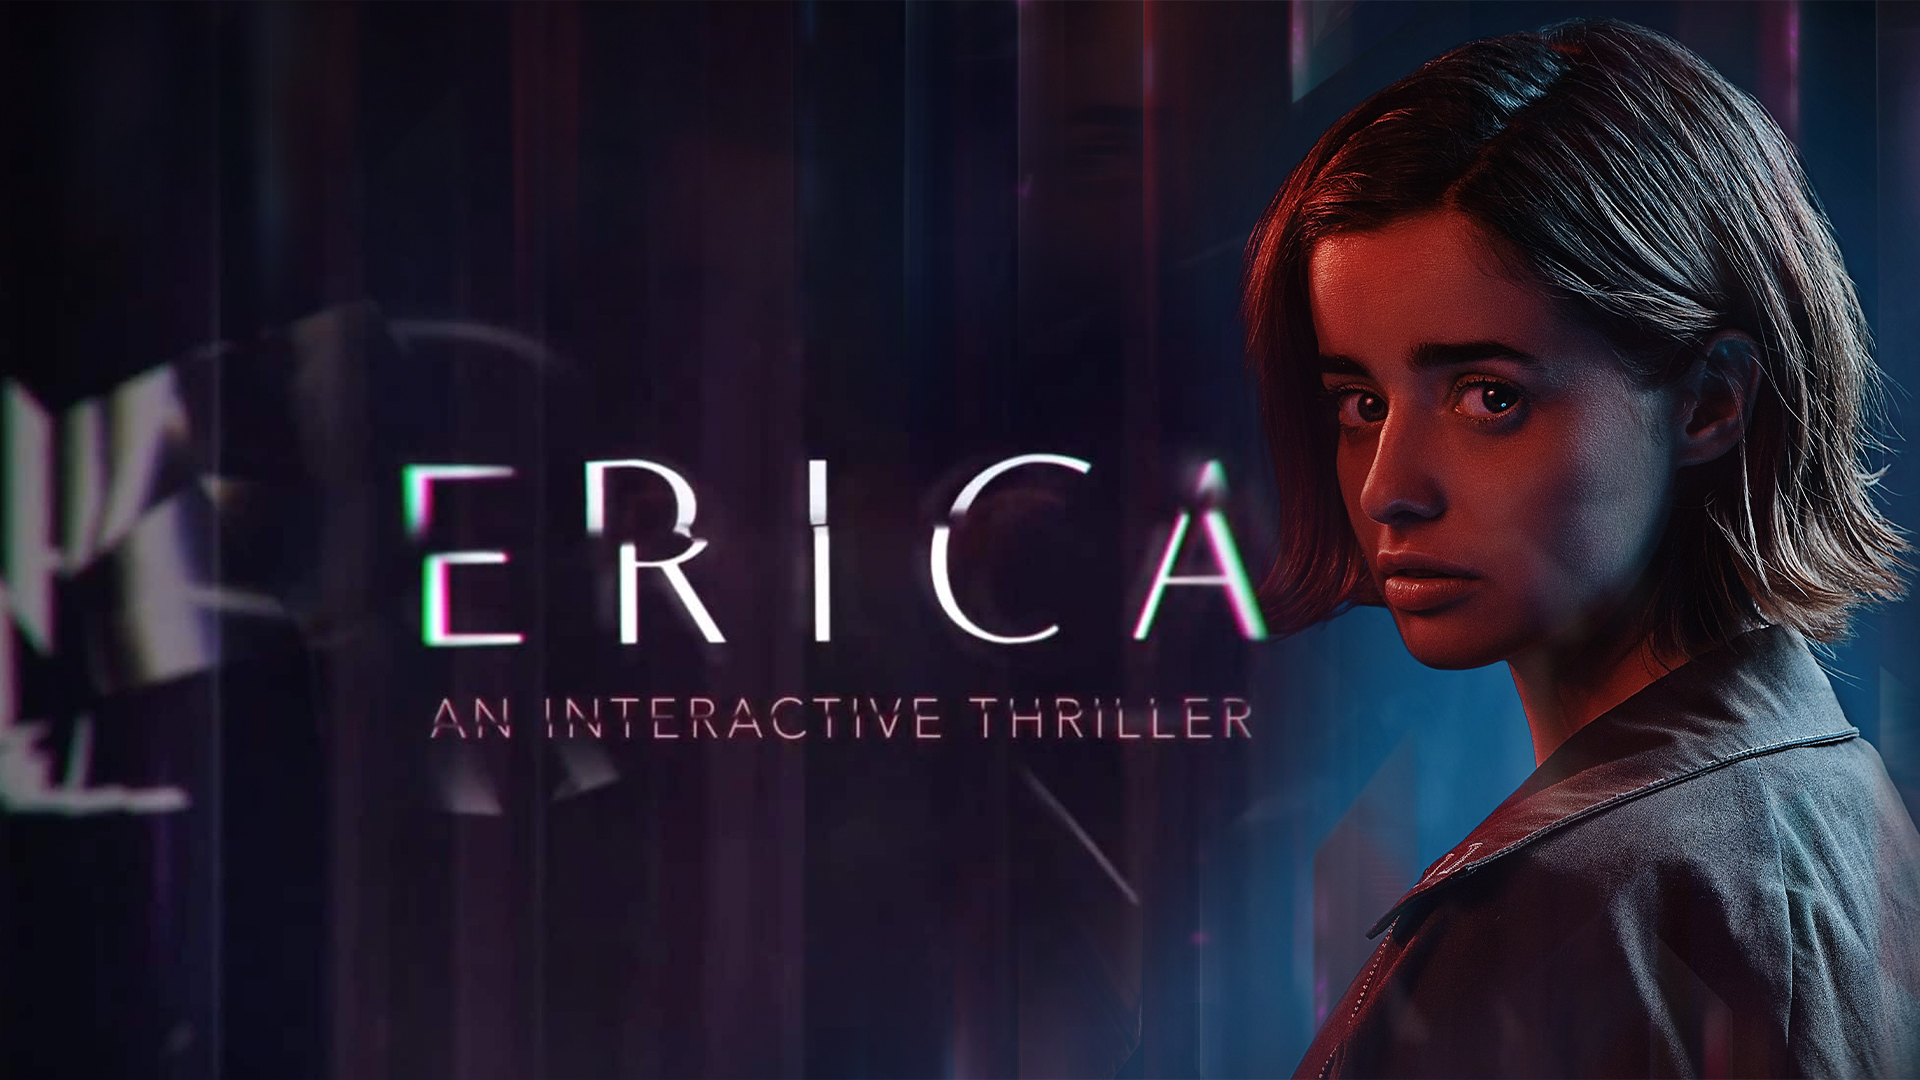 Erica: FMV-Adventure mit neuen Tricks